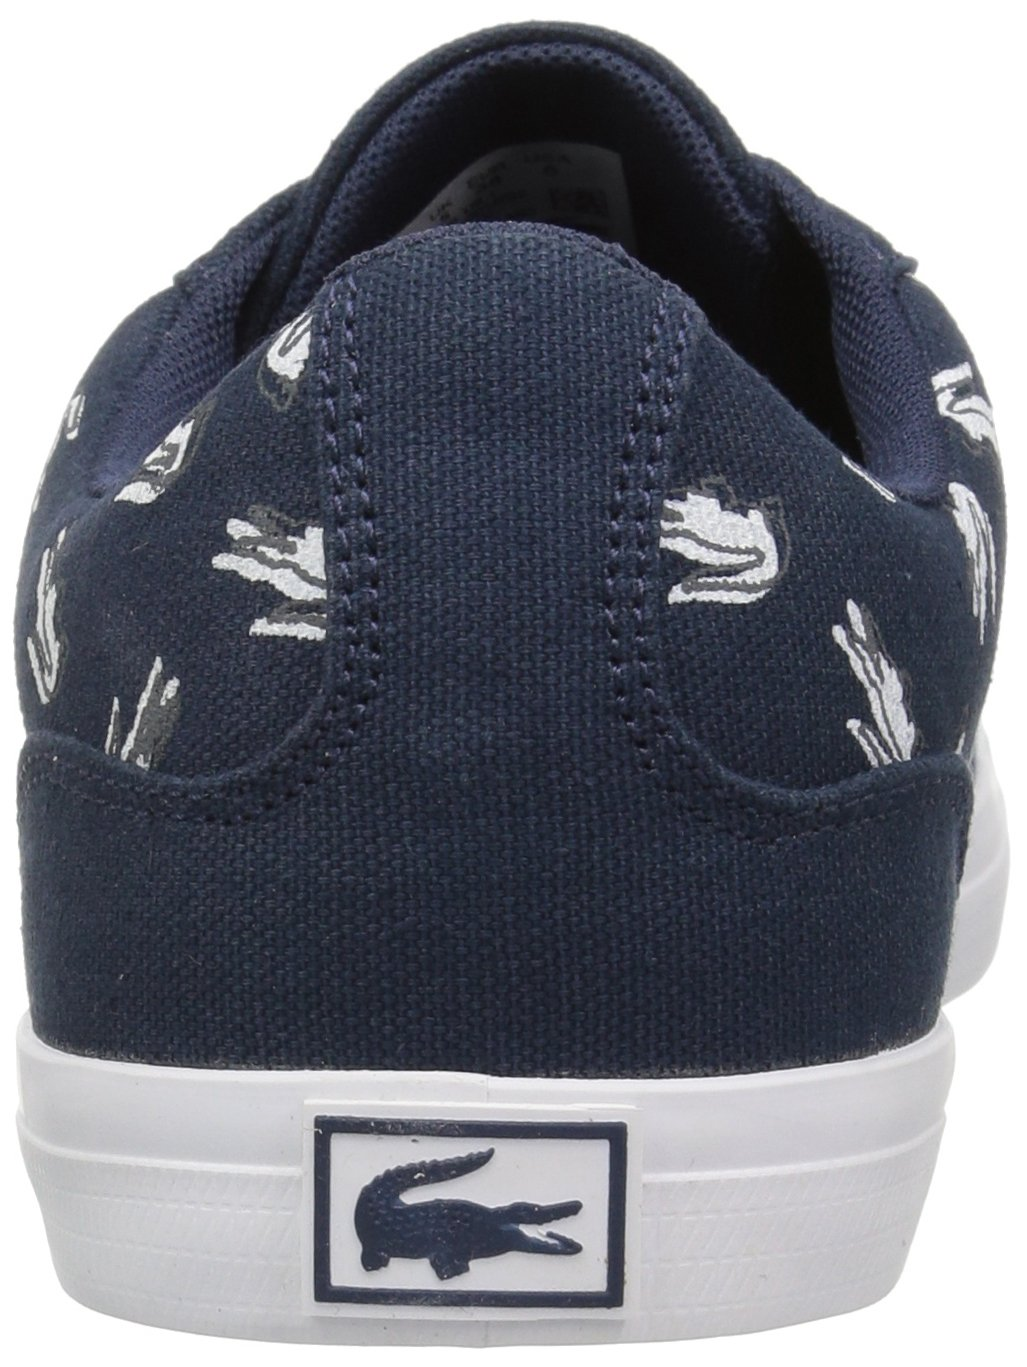 Lacoste Kids' Lerond Sneakers,Navy/White cotton canvas,5 M US Big Kid by Lacoste (Image #2)